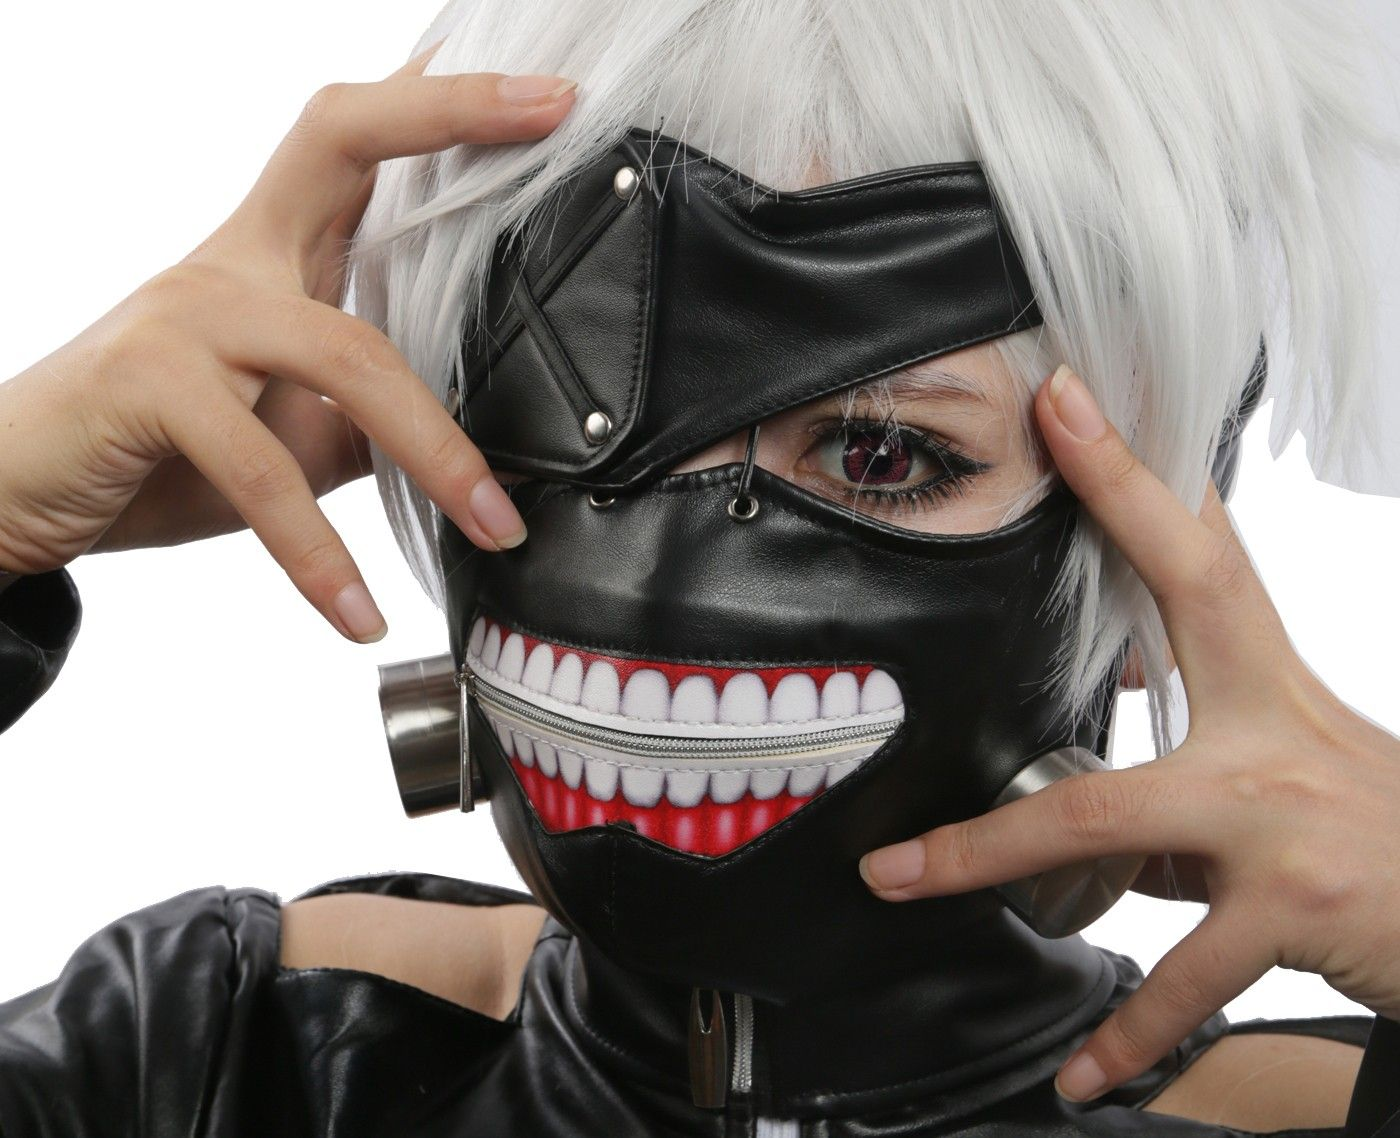 Pin on Tokyo ghoul mask